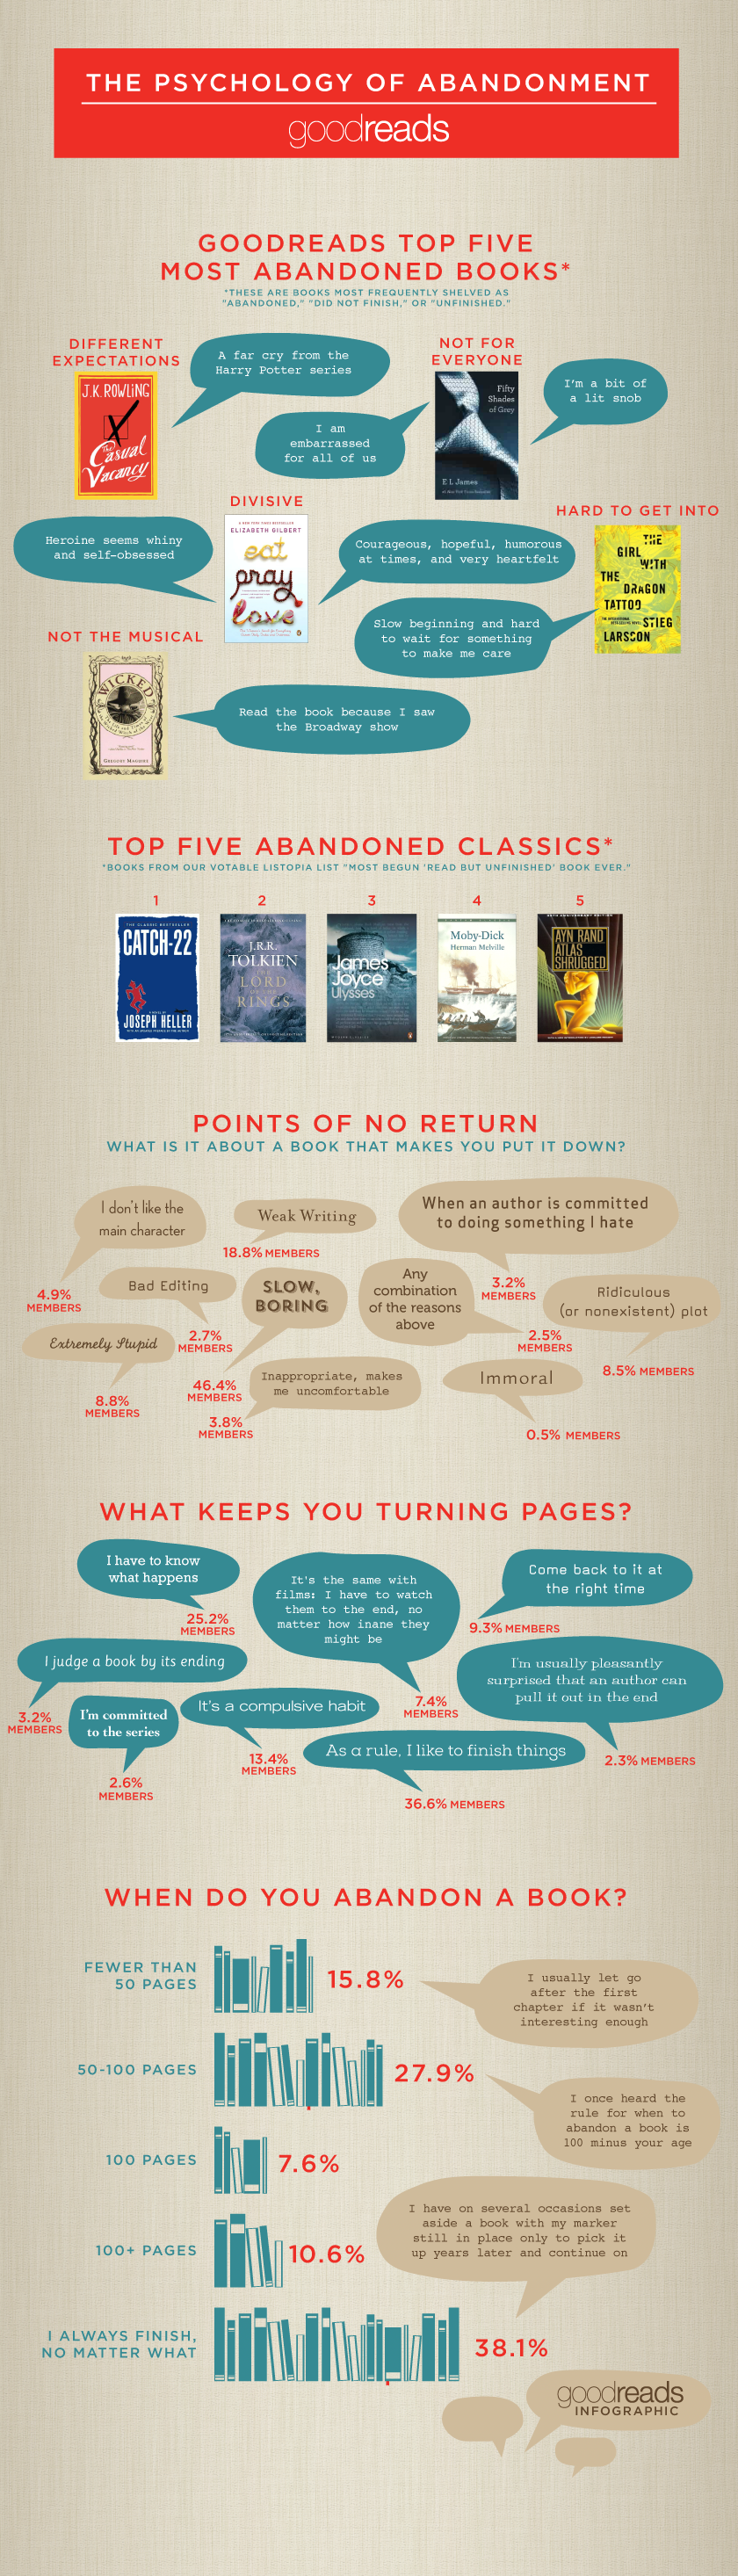 Infographic by Goodreads